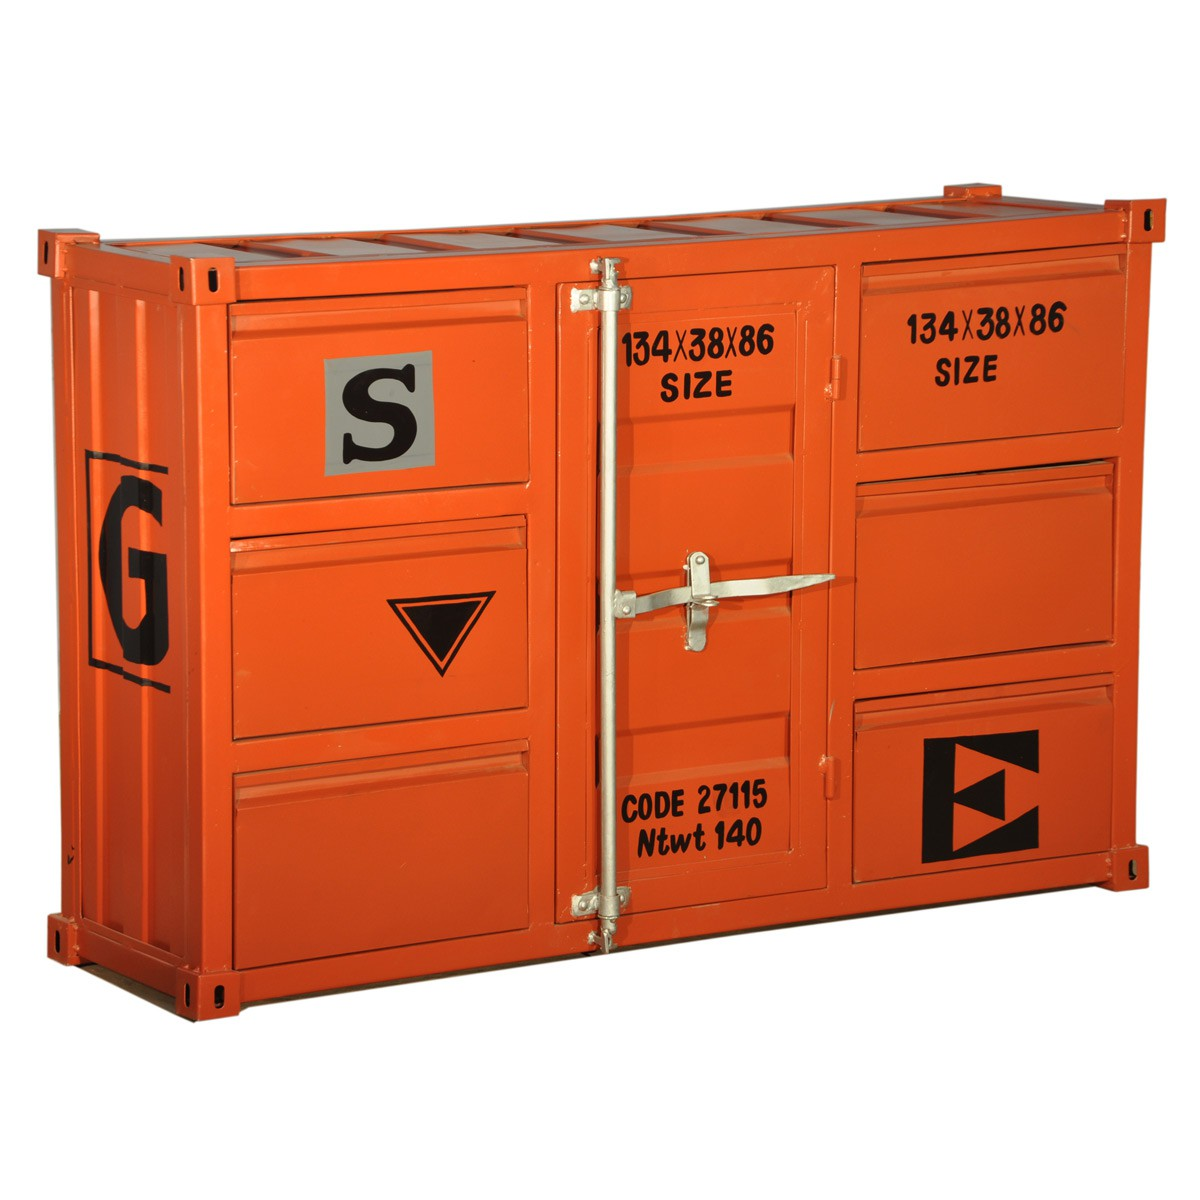 ts ideen kommode schrank roll container shabby orange gelb industrie design 105 x 44 cm mit. Black Bedroom Furniture Sets. Home Design Ideas